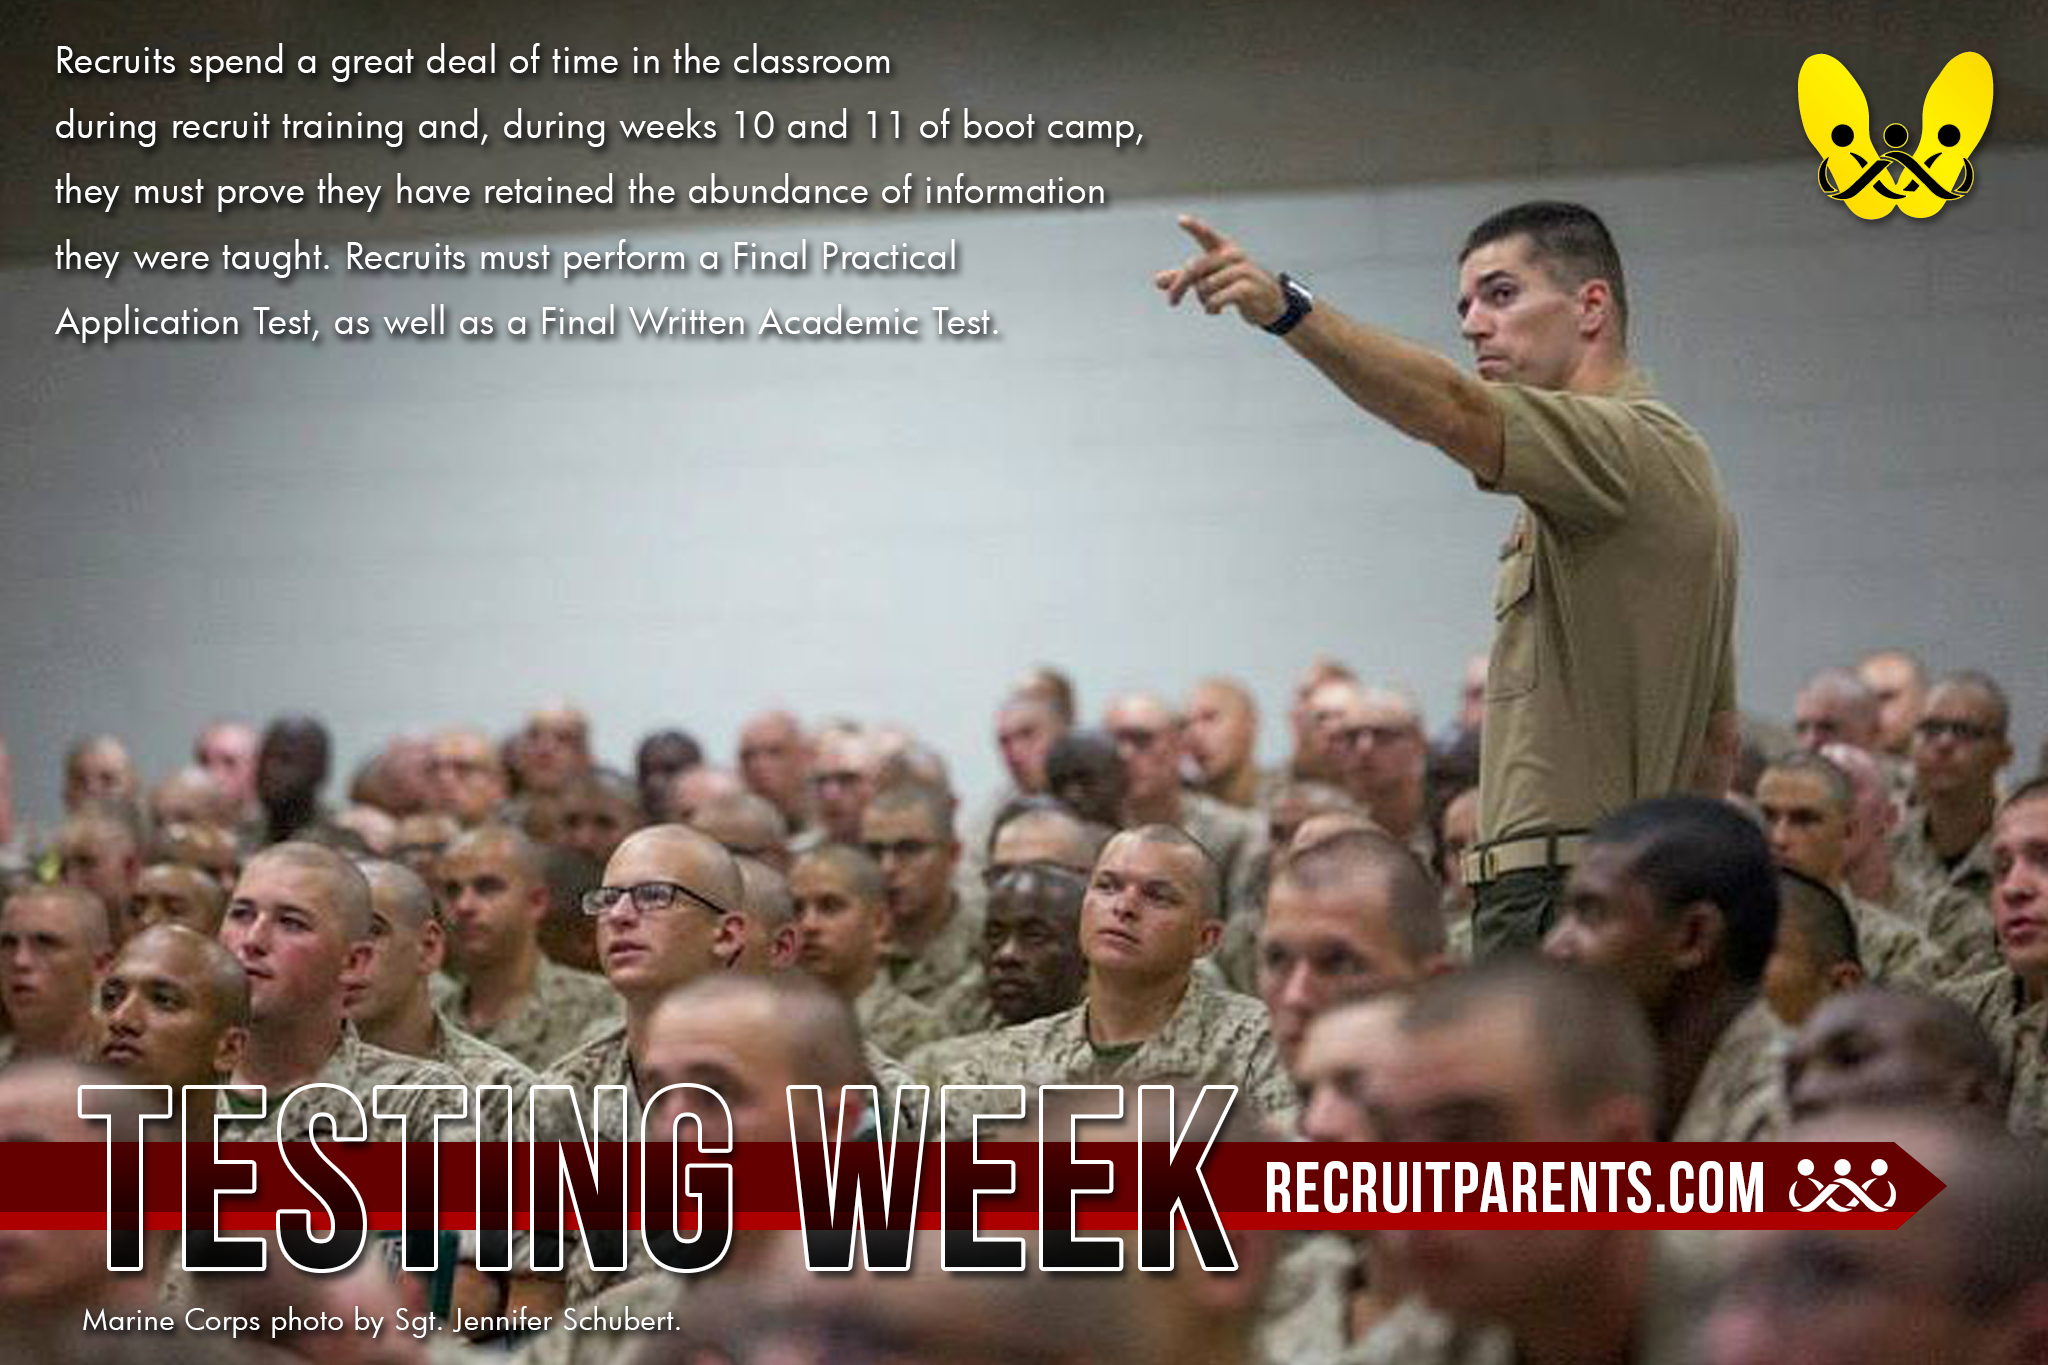 RecruitParents.com USMC Testing Week